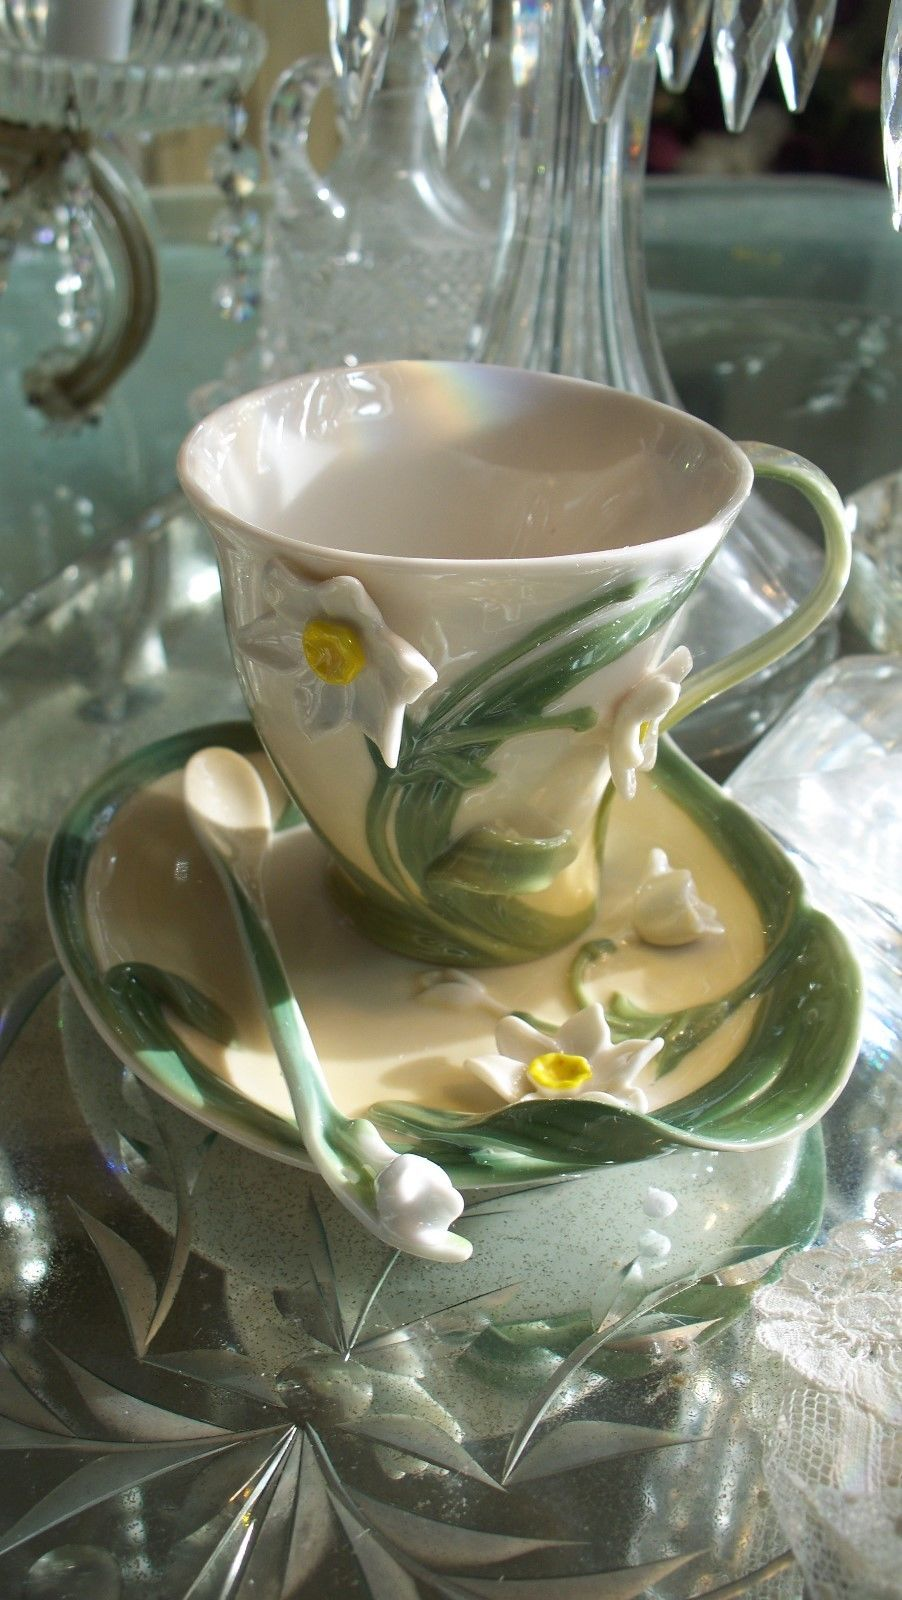 Lovely Garden Narcissus Flower Tea Set